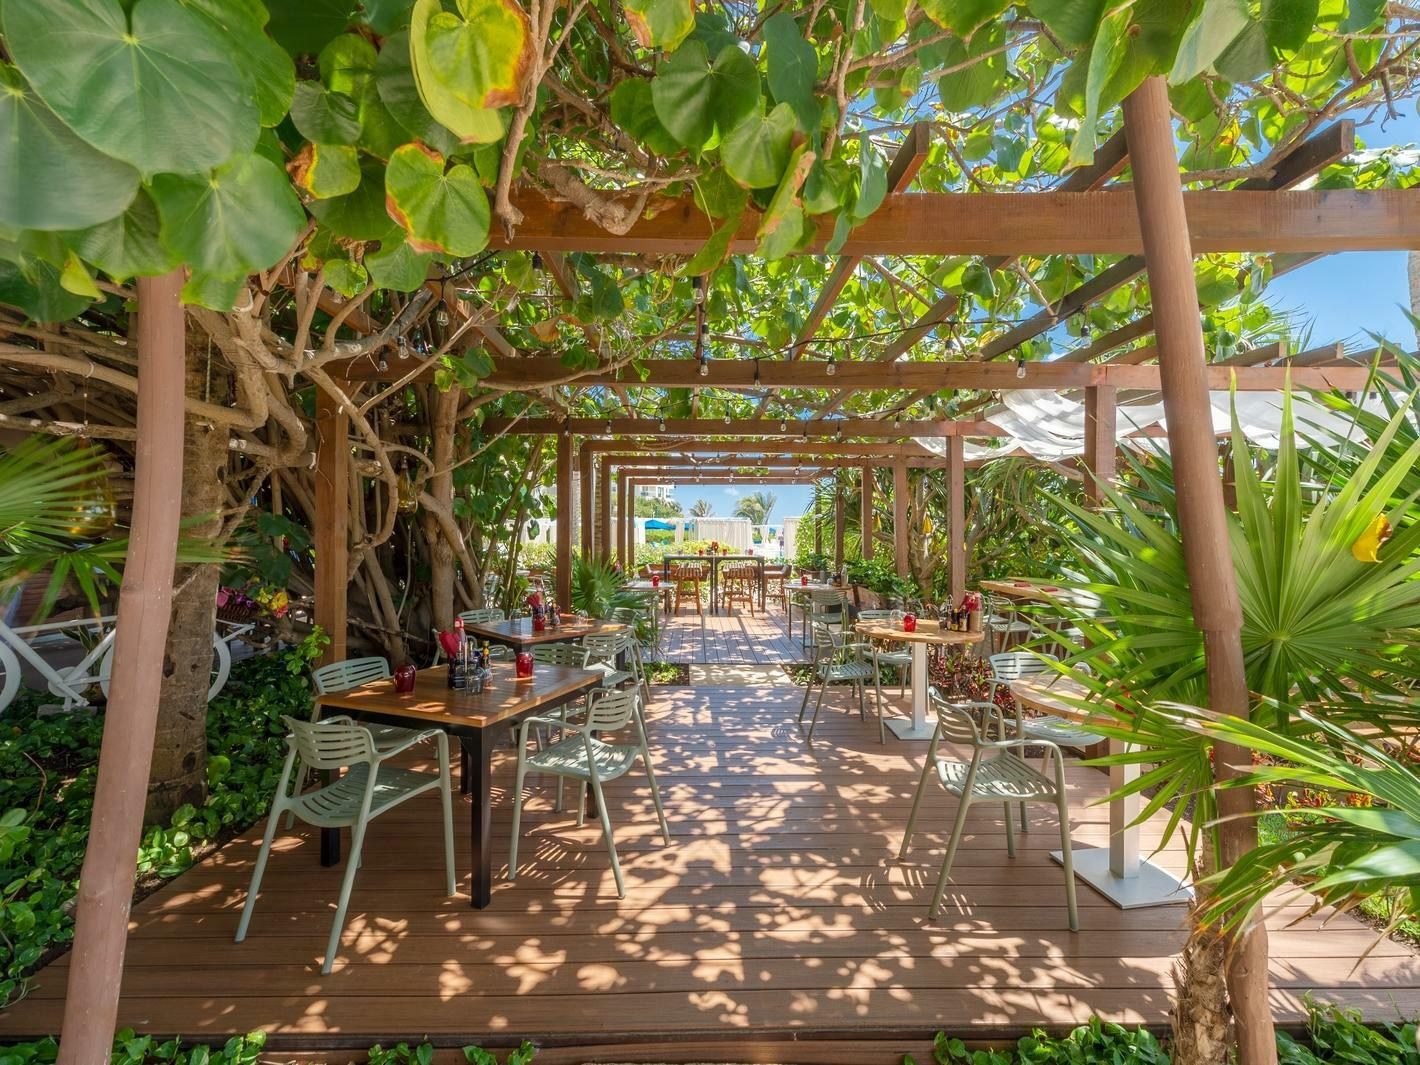 outdoor dining tables under tree covered pergola